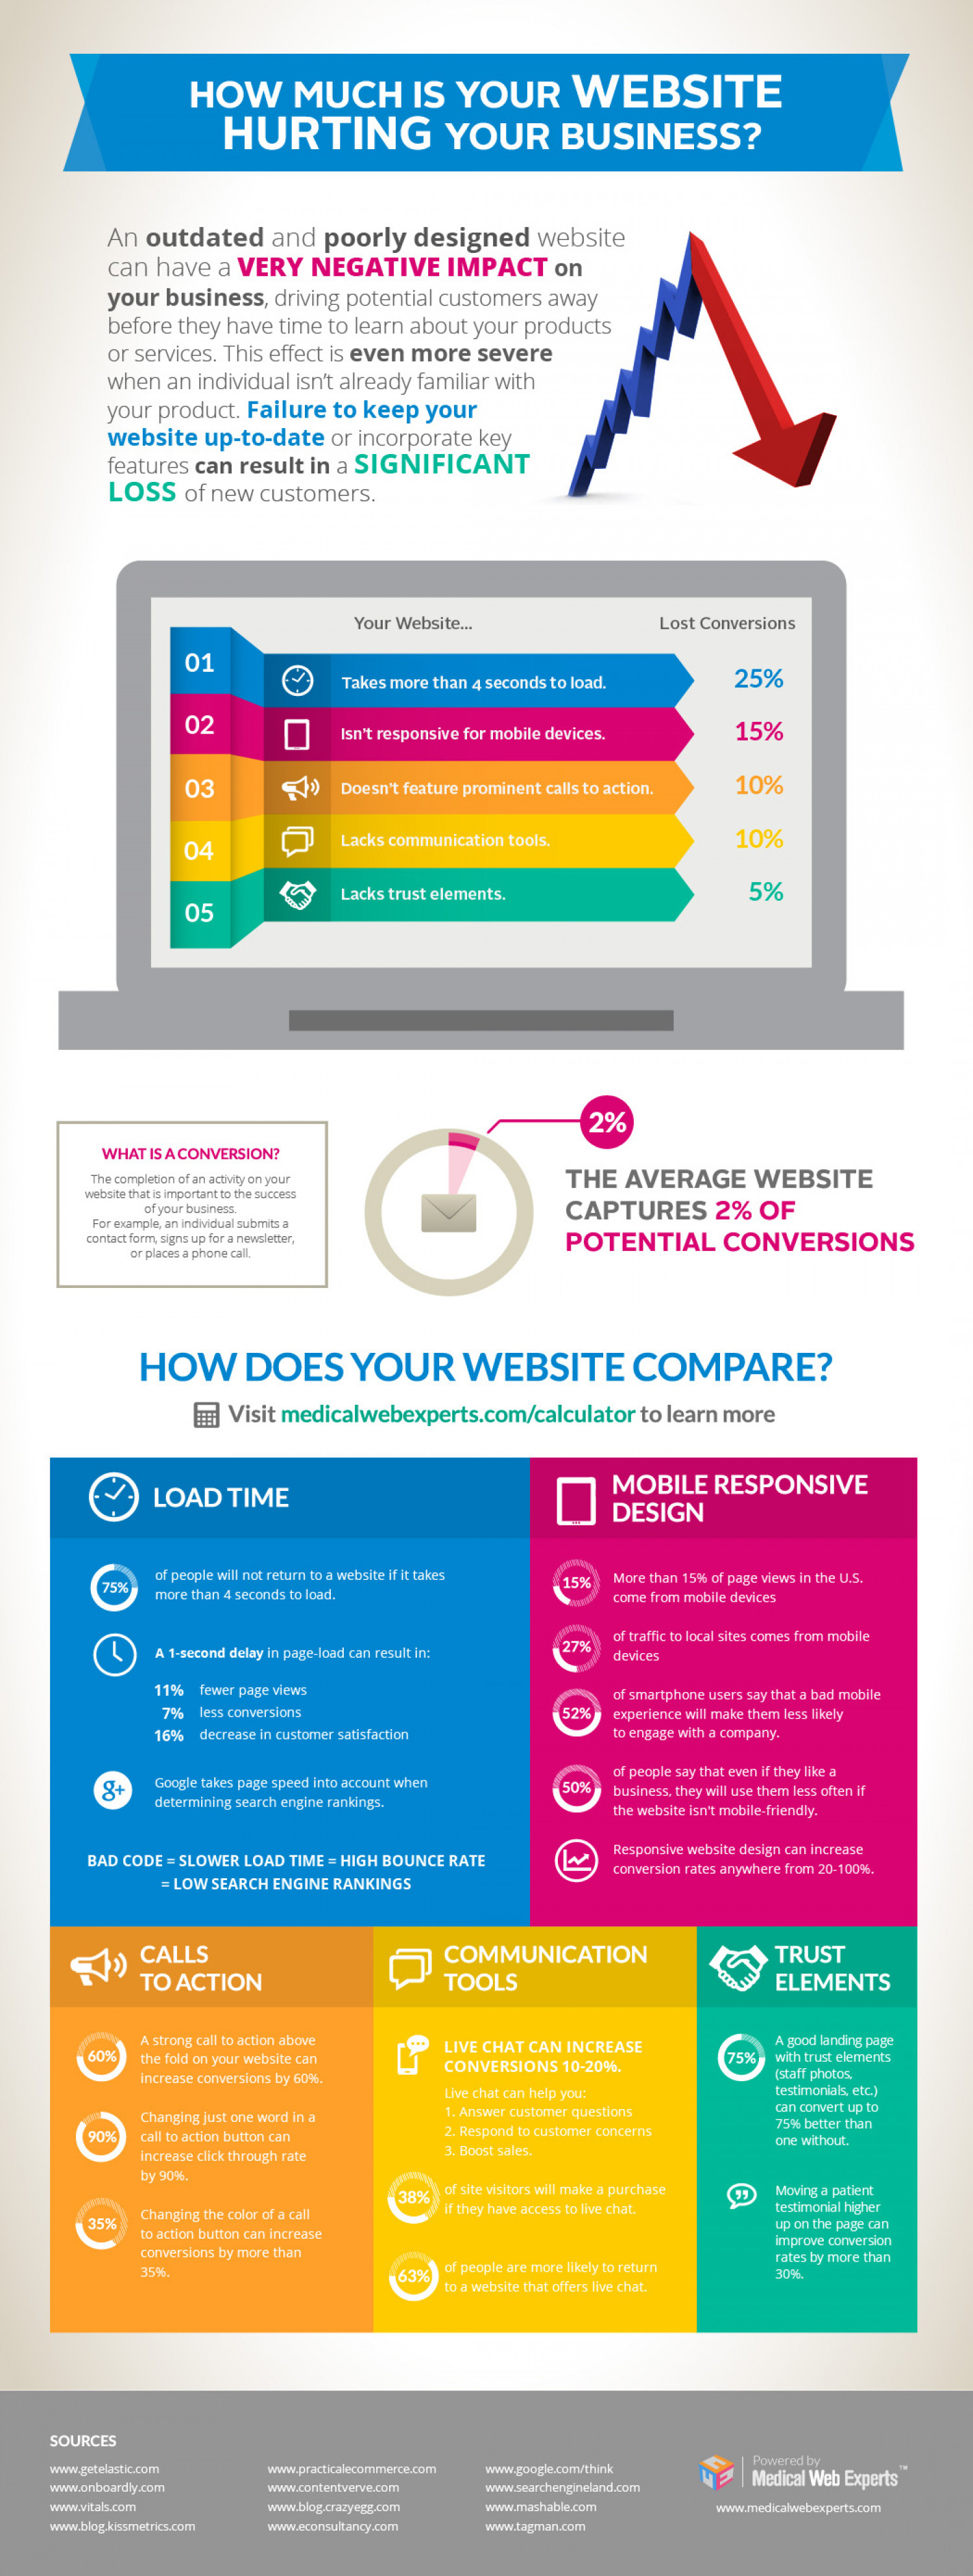 How Much Is Your Website Hurting Your Business? Infographic